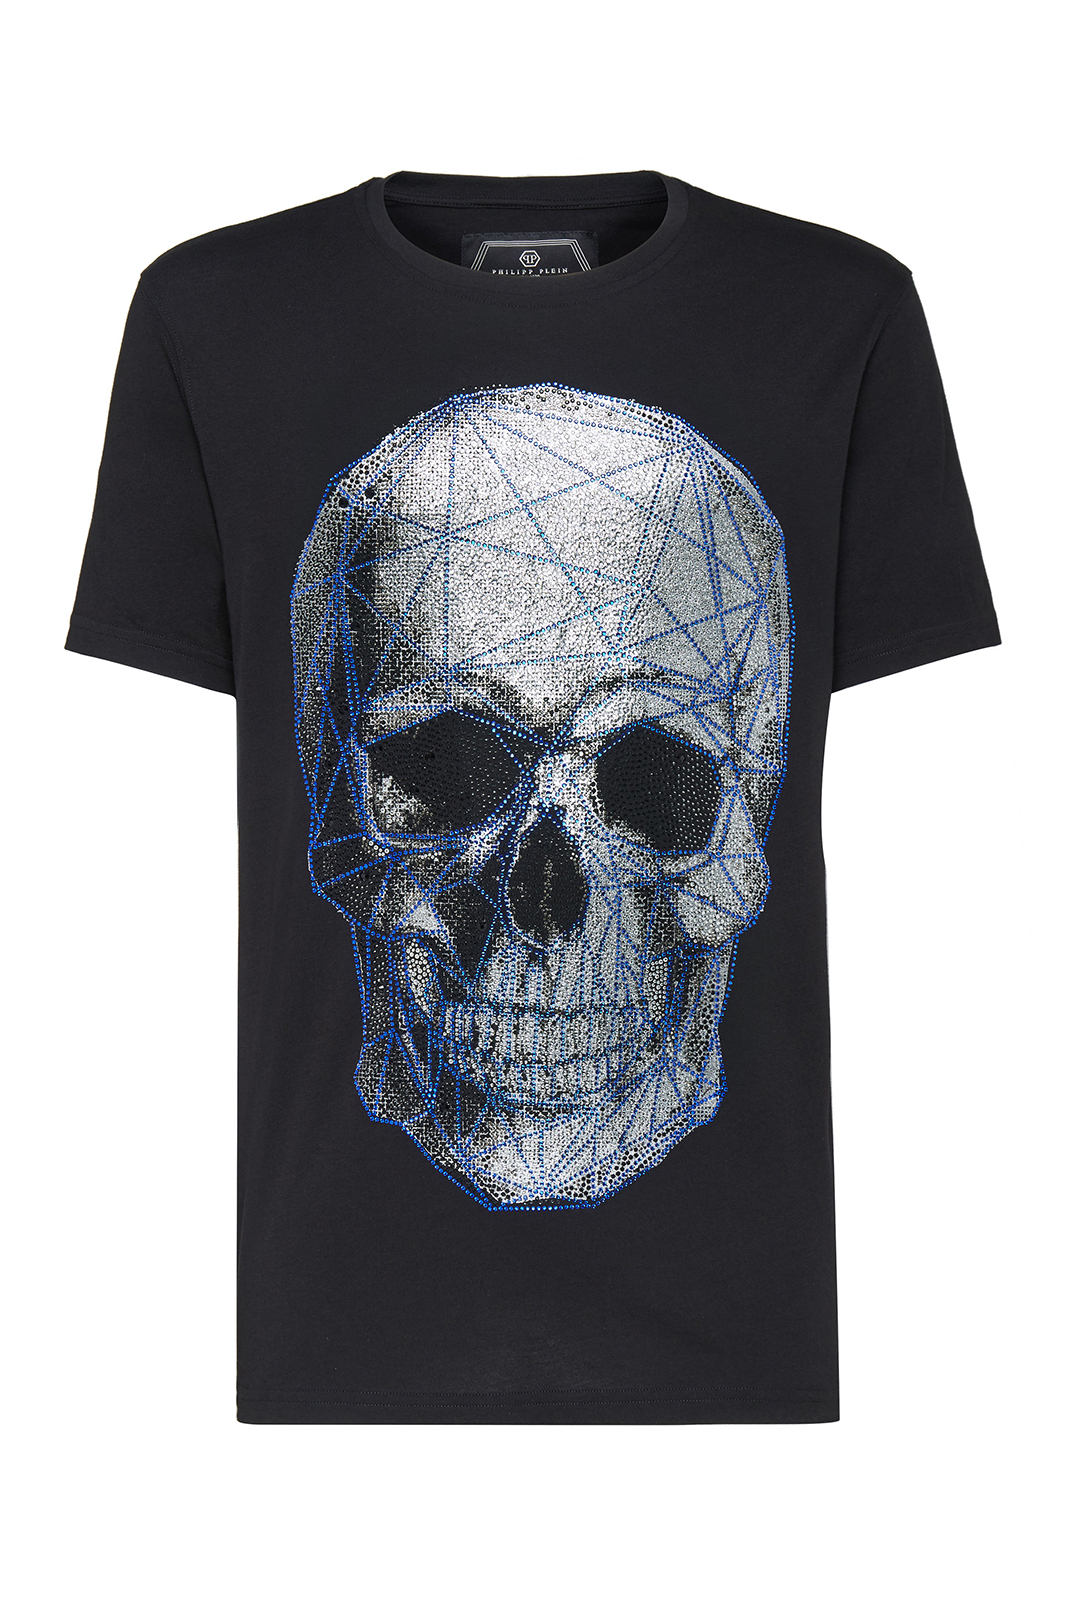 Tee-shirts  Philipp plein MTK3069 Platinum Cut Round Neck Skull BLACK/BLUE